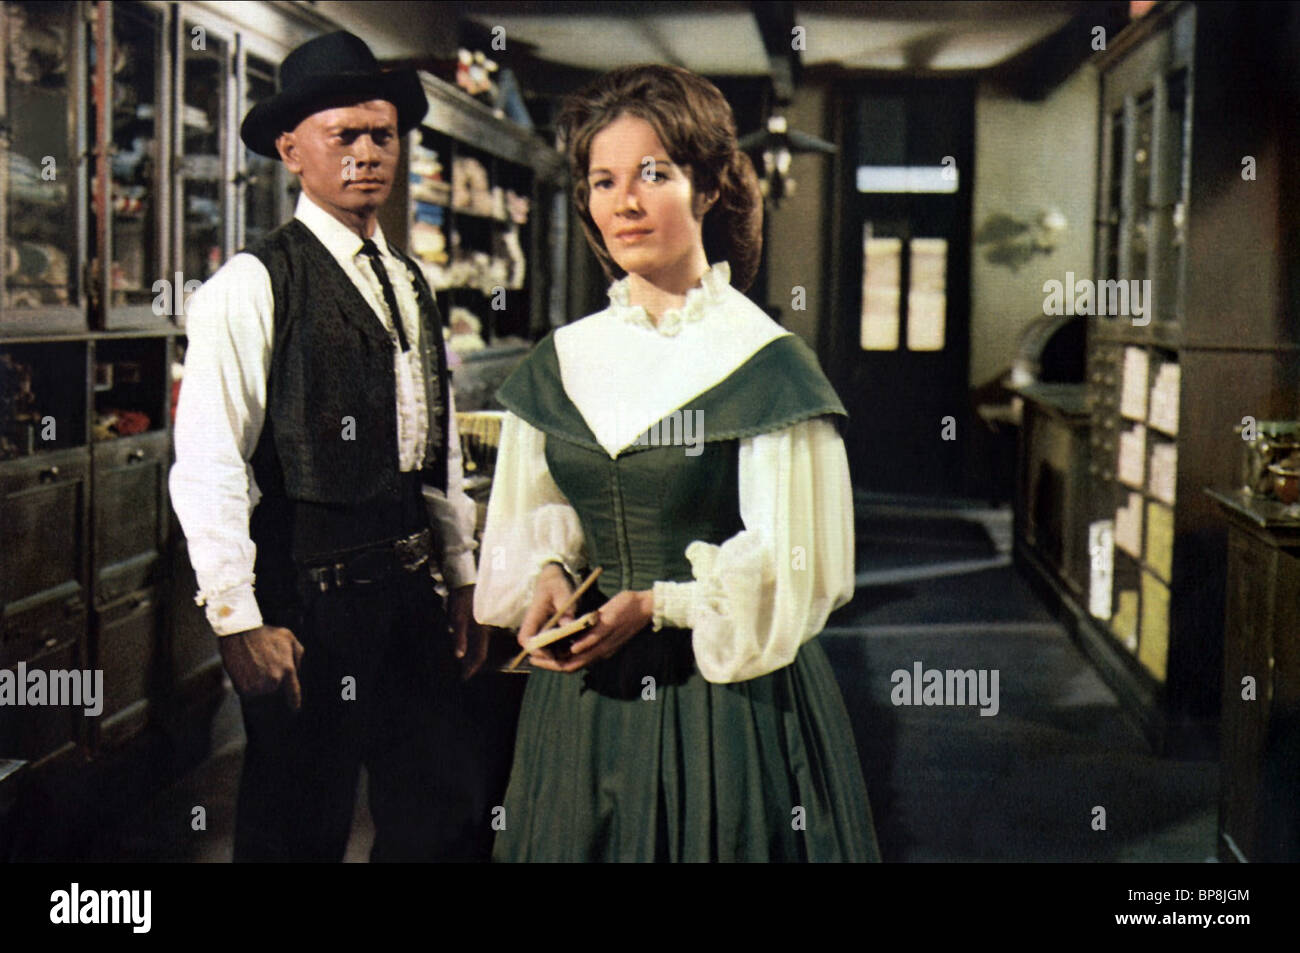 yul brynner janice rule invitation to a gunfighter 1964 BP8JGM yul brynner & janice rule invitation to a gunfighter (1964 stock,Invitation To A Gunfighter 1964